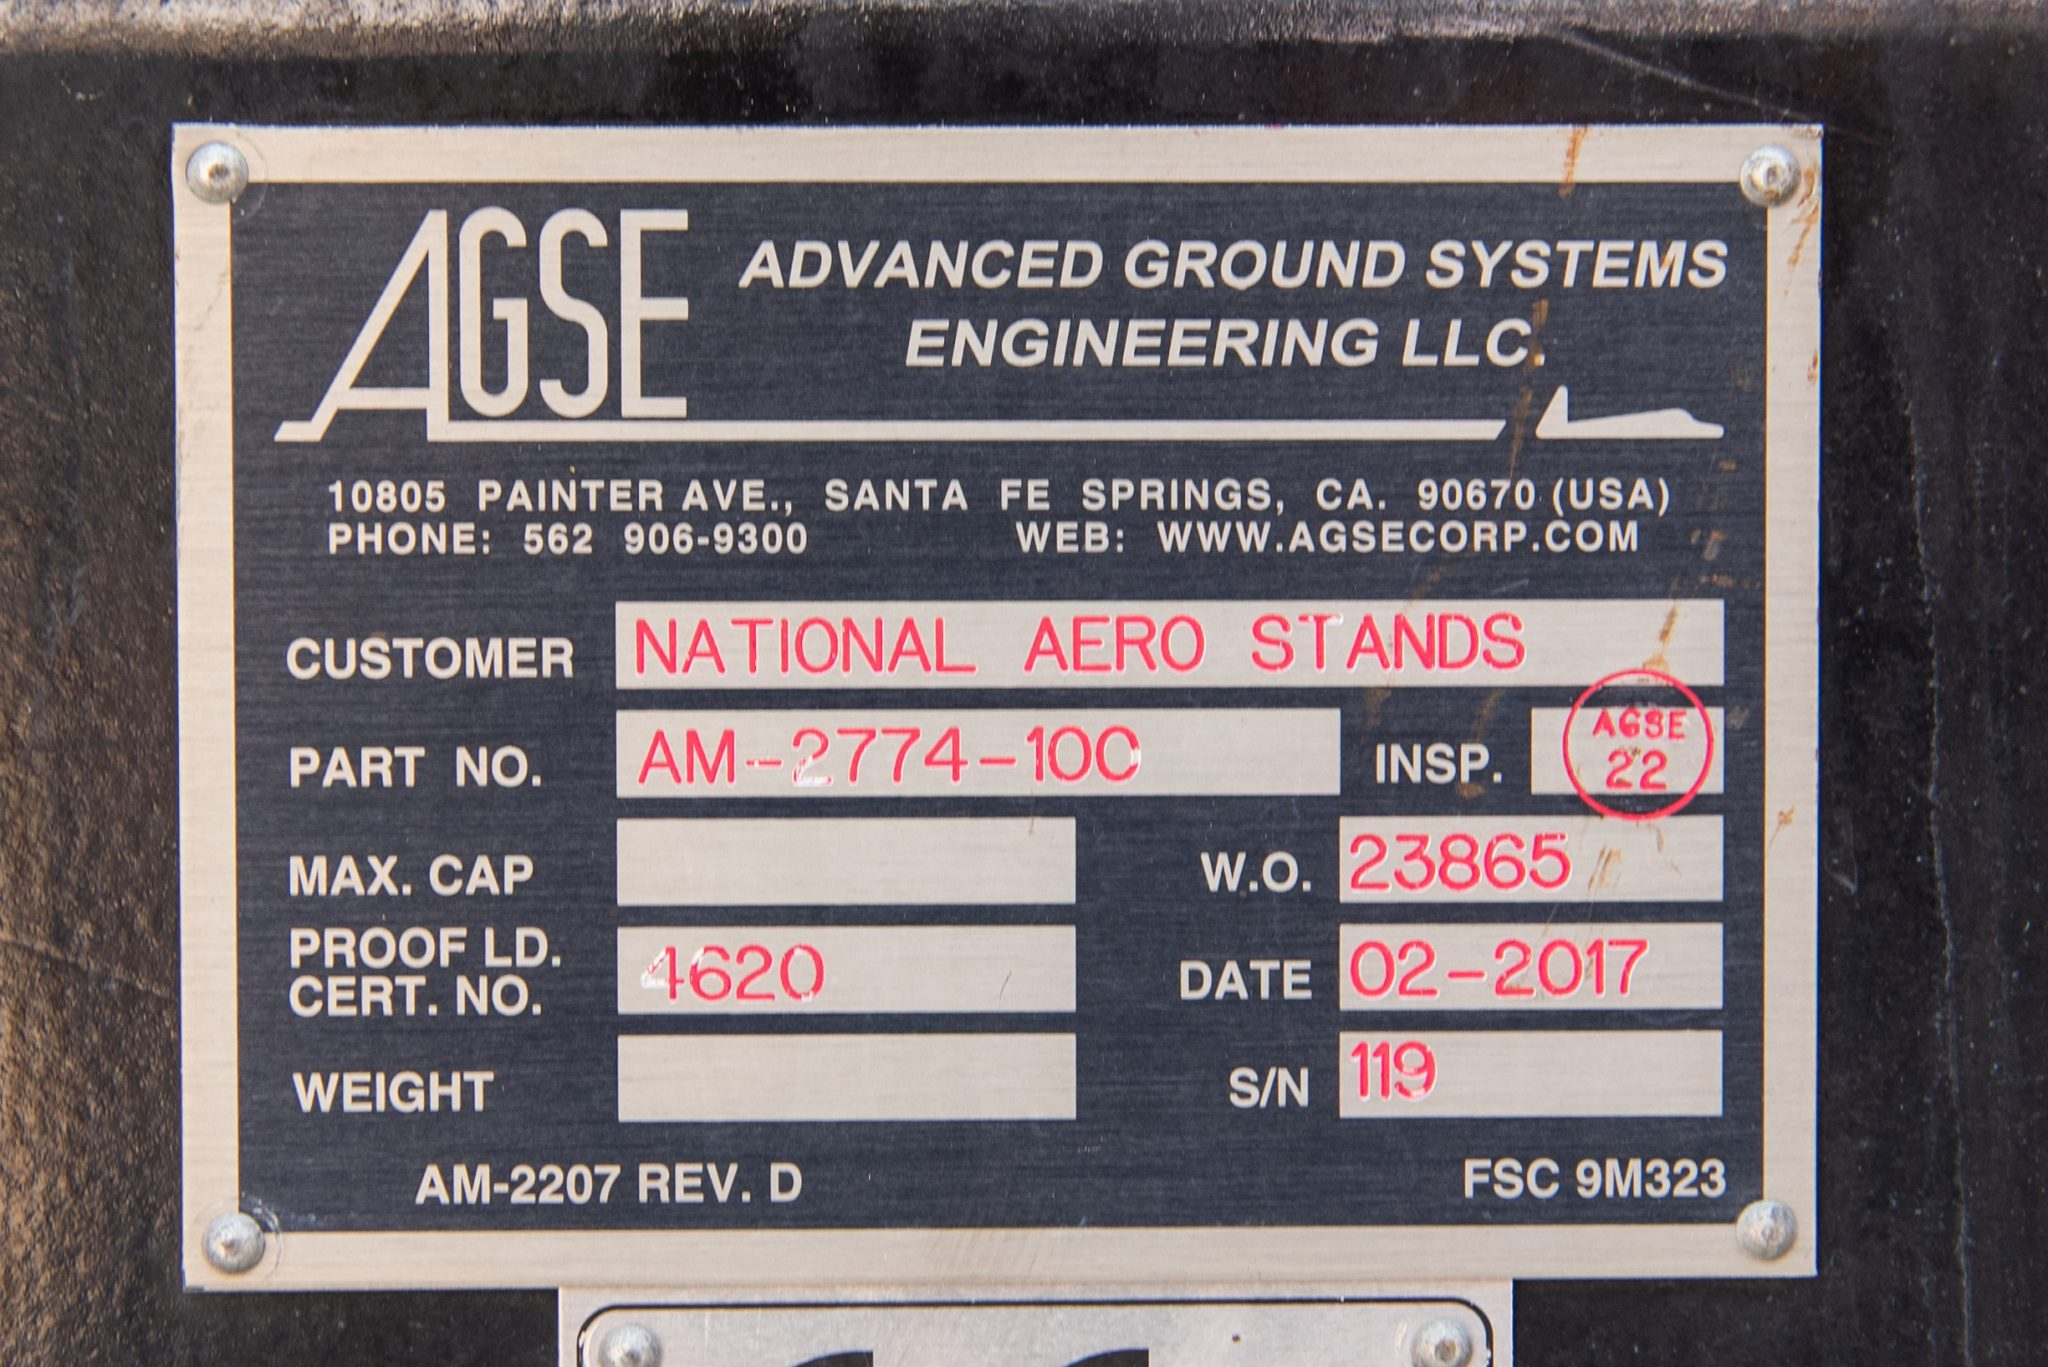 PW4090 serial number